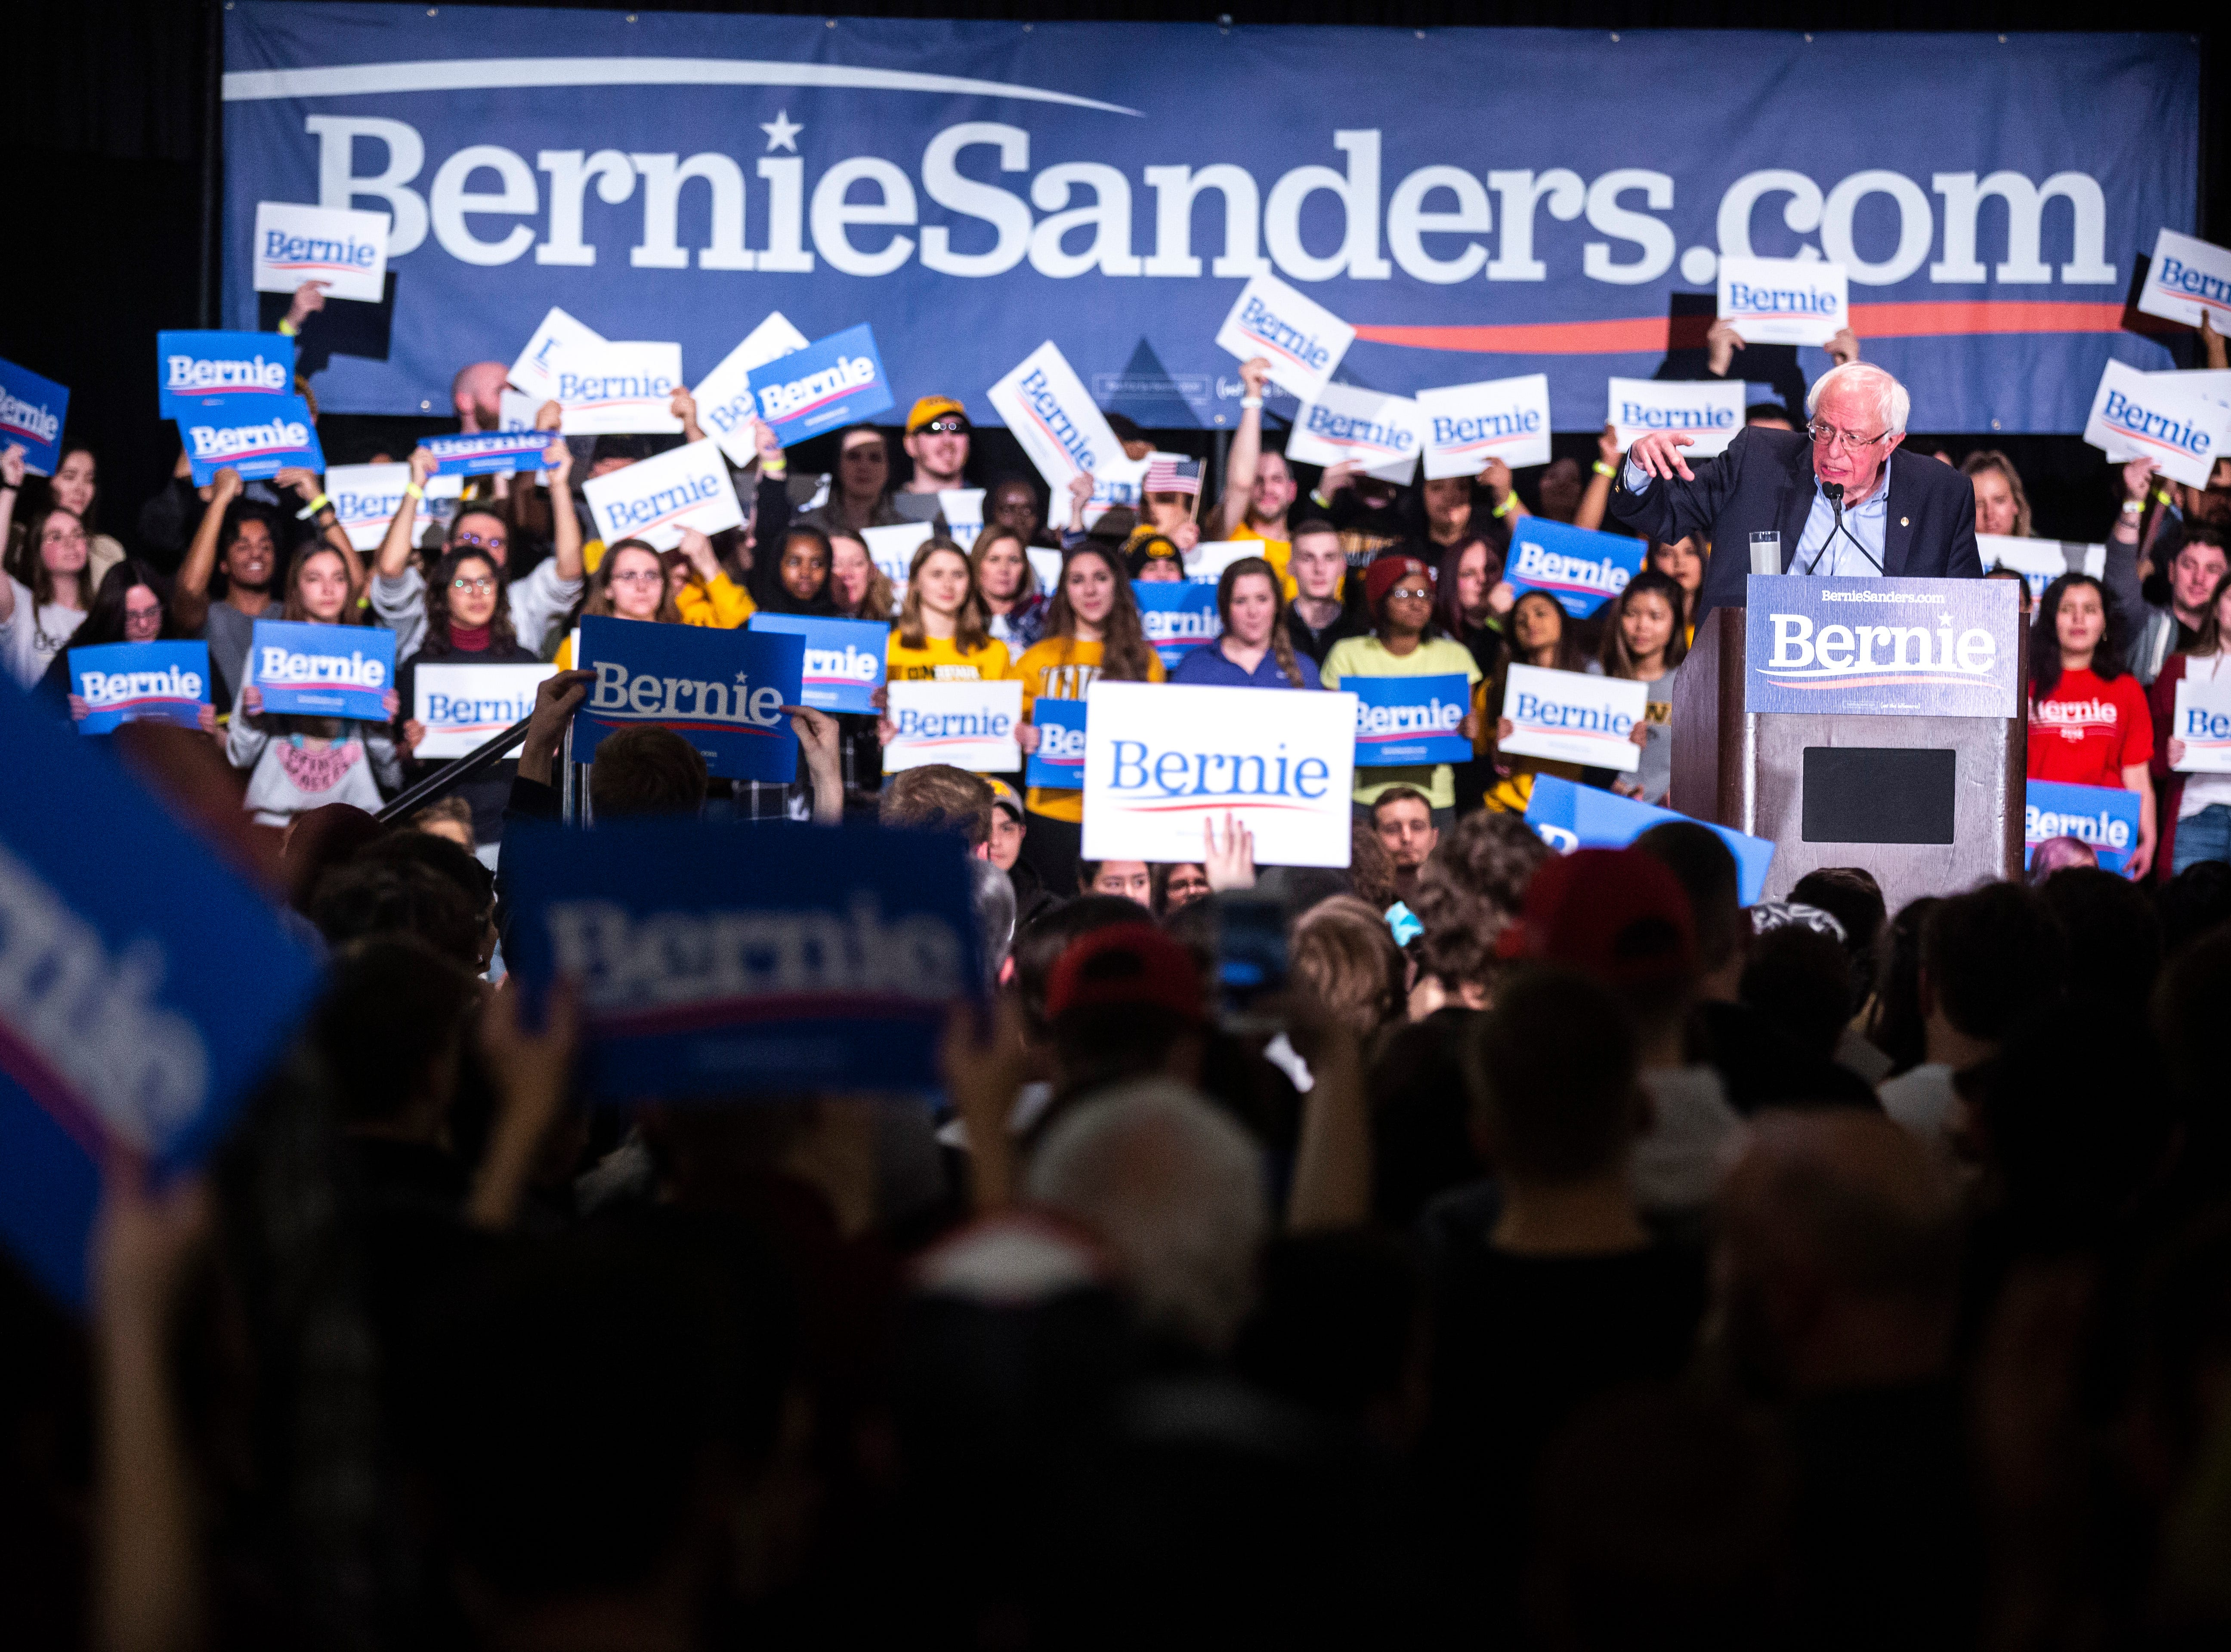 U.S. Sen. Bernie Sanders, I-VT, speaks at an event during his first trip to the state ahead of the caucus, Friday, March 8, 2019, at the Iowa Memorial Union on the University of Iowa campus in Iowa City, Iowa.